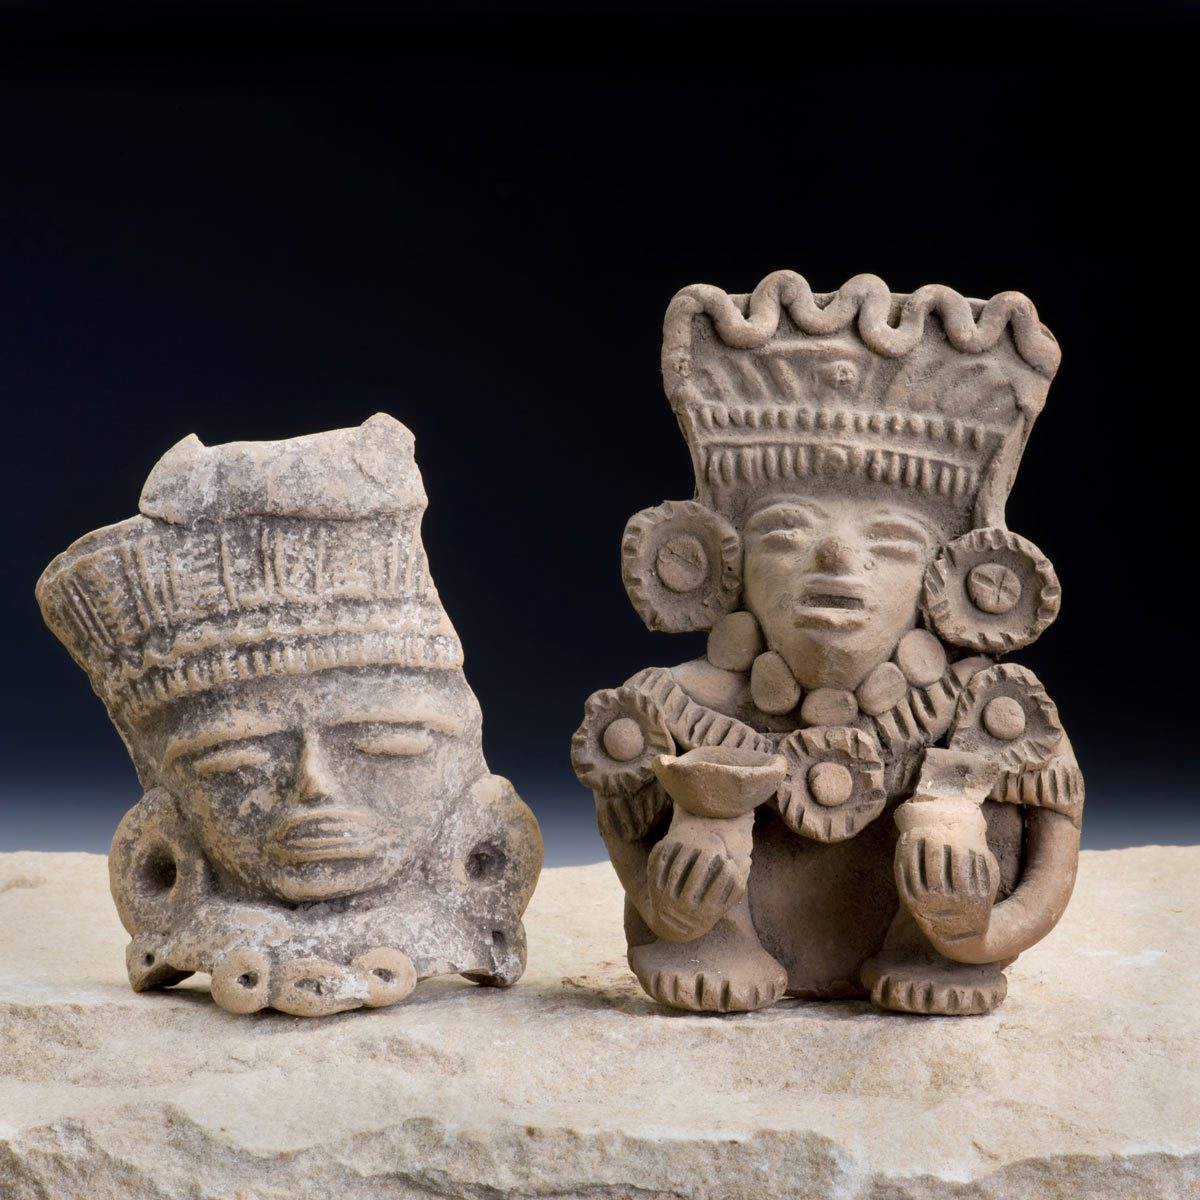 Mayan Pre Columbian warrior figurines made around 600-1000 AD